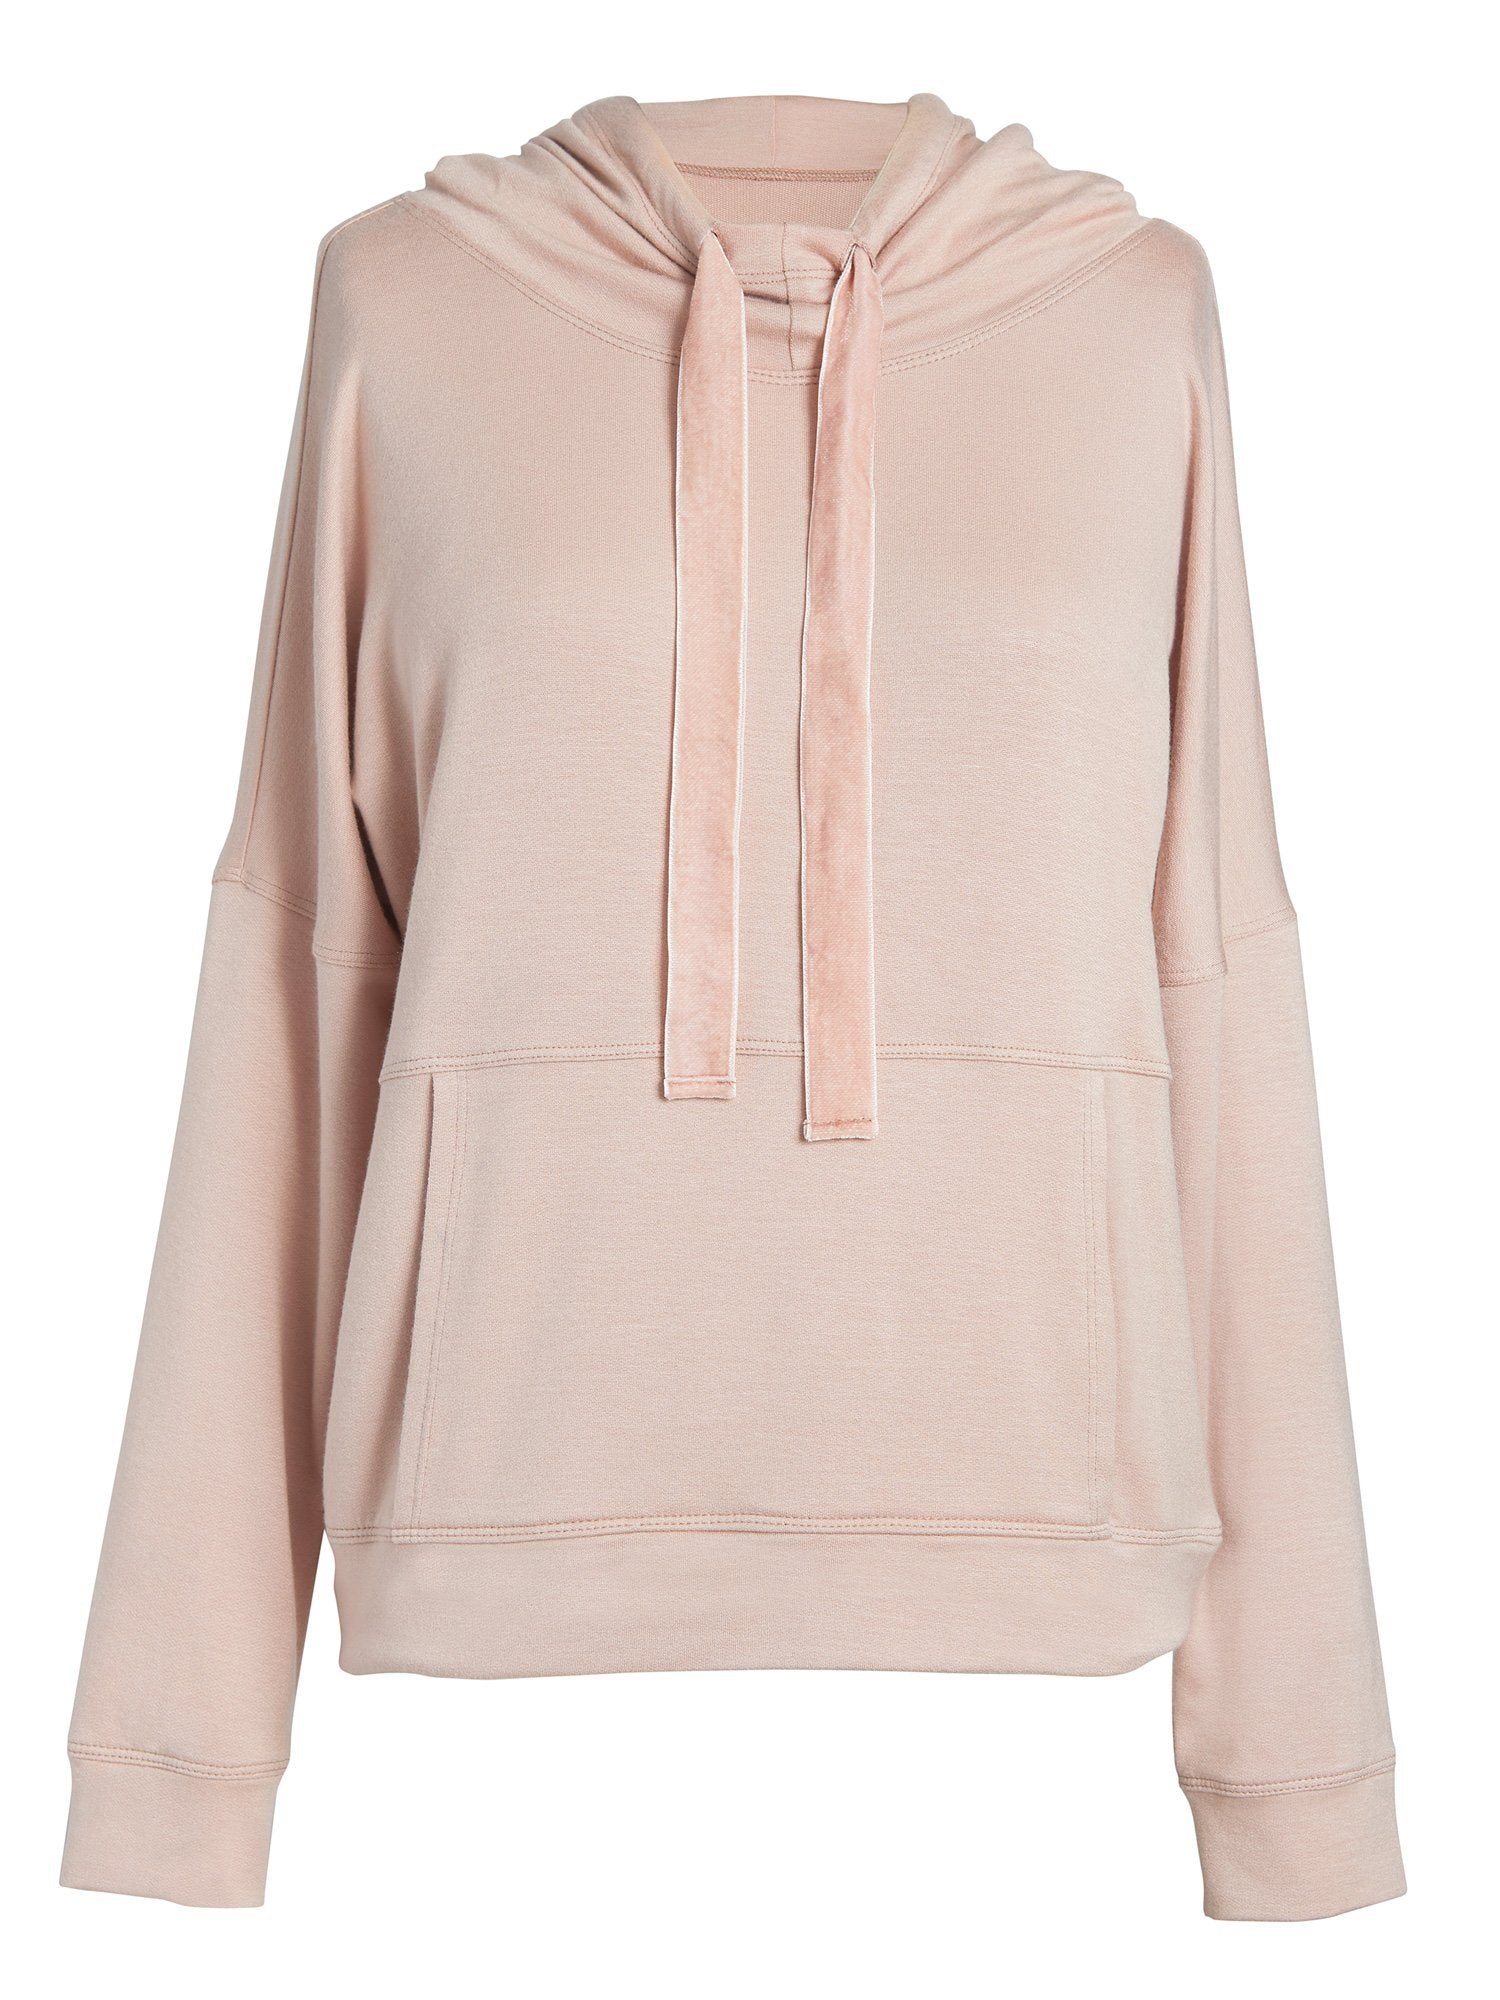 Ava Hoodie Tops by Le Marché by NP